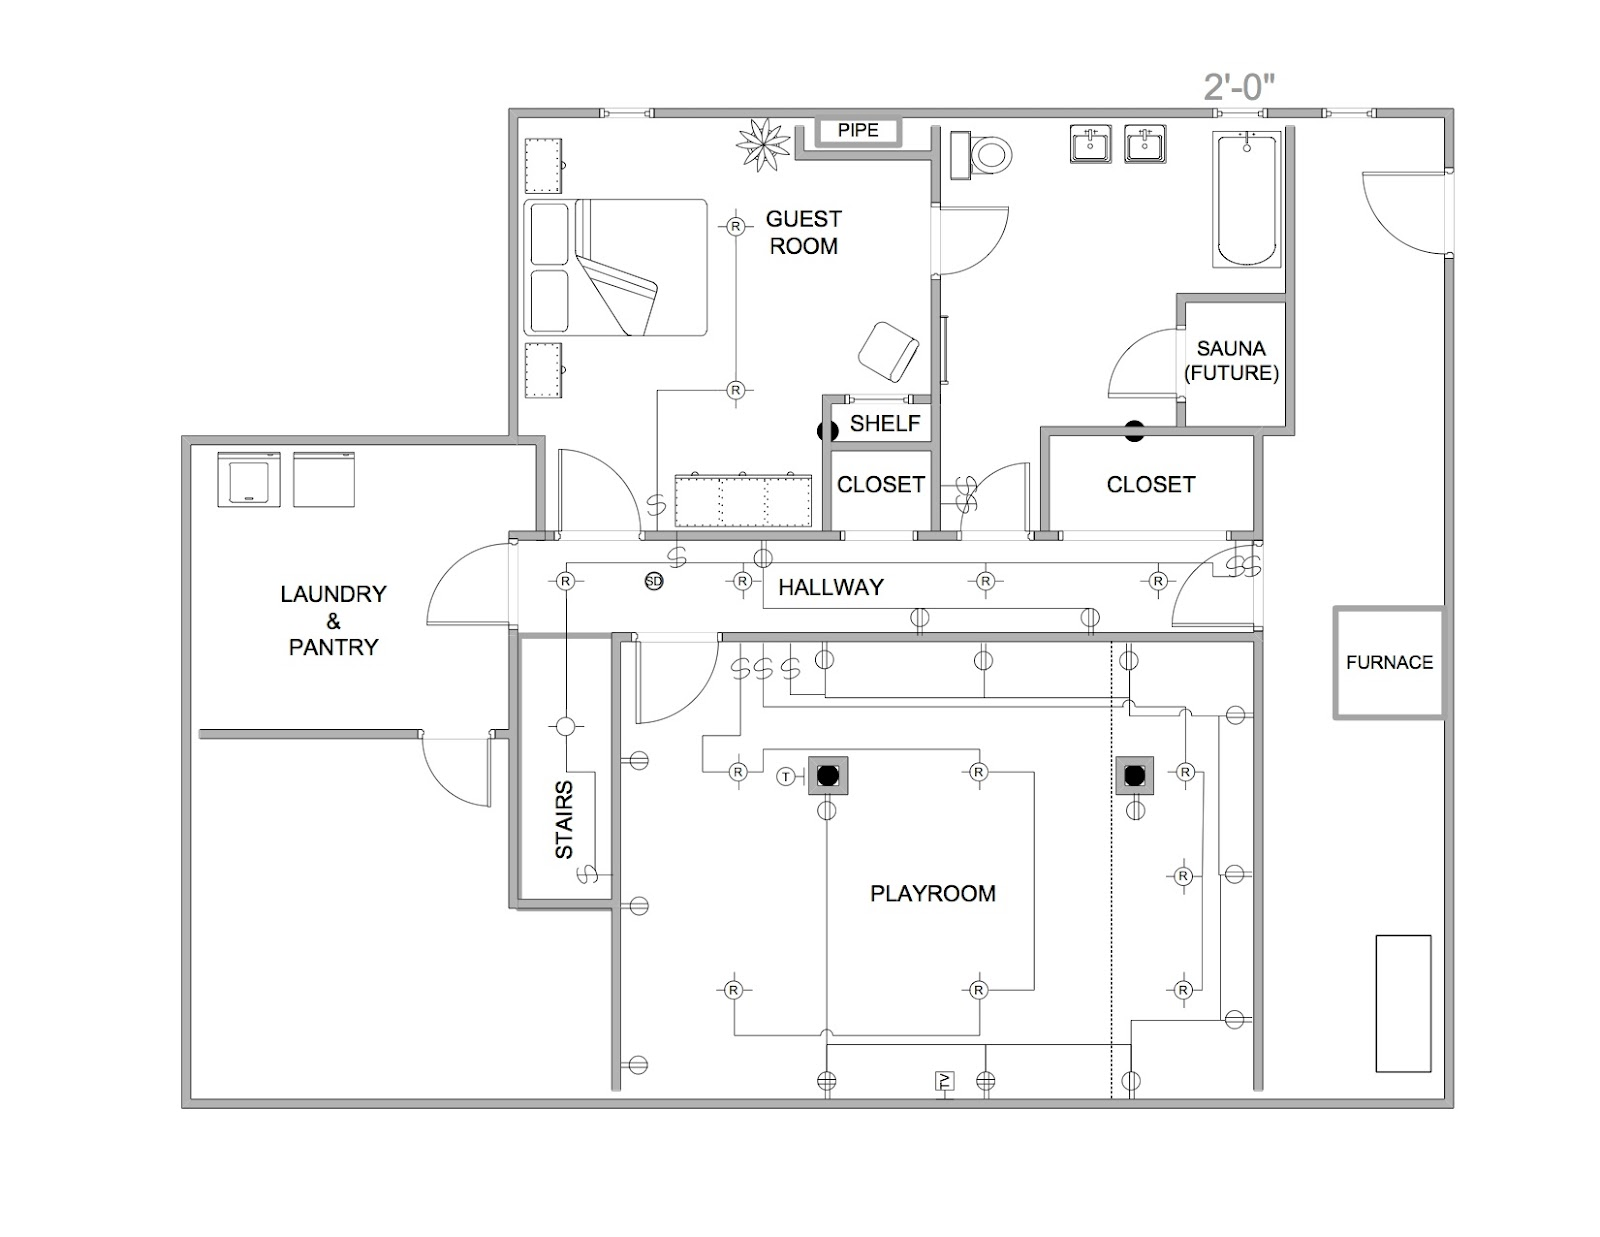 kitchen wiring layout kitchen image wiring diagram electrical drawing for kitchen the wiring diagram on kitchen wiring layout